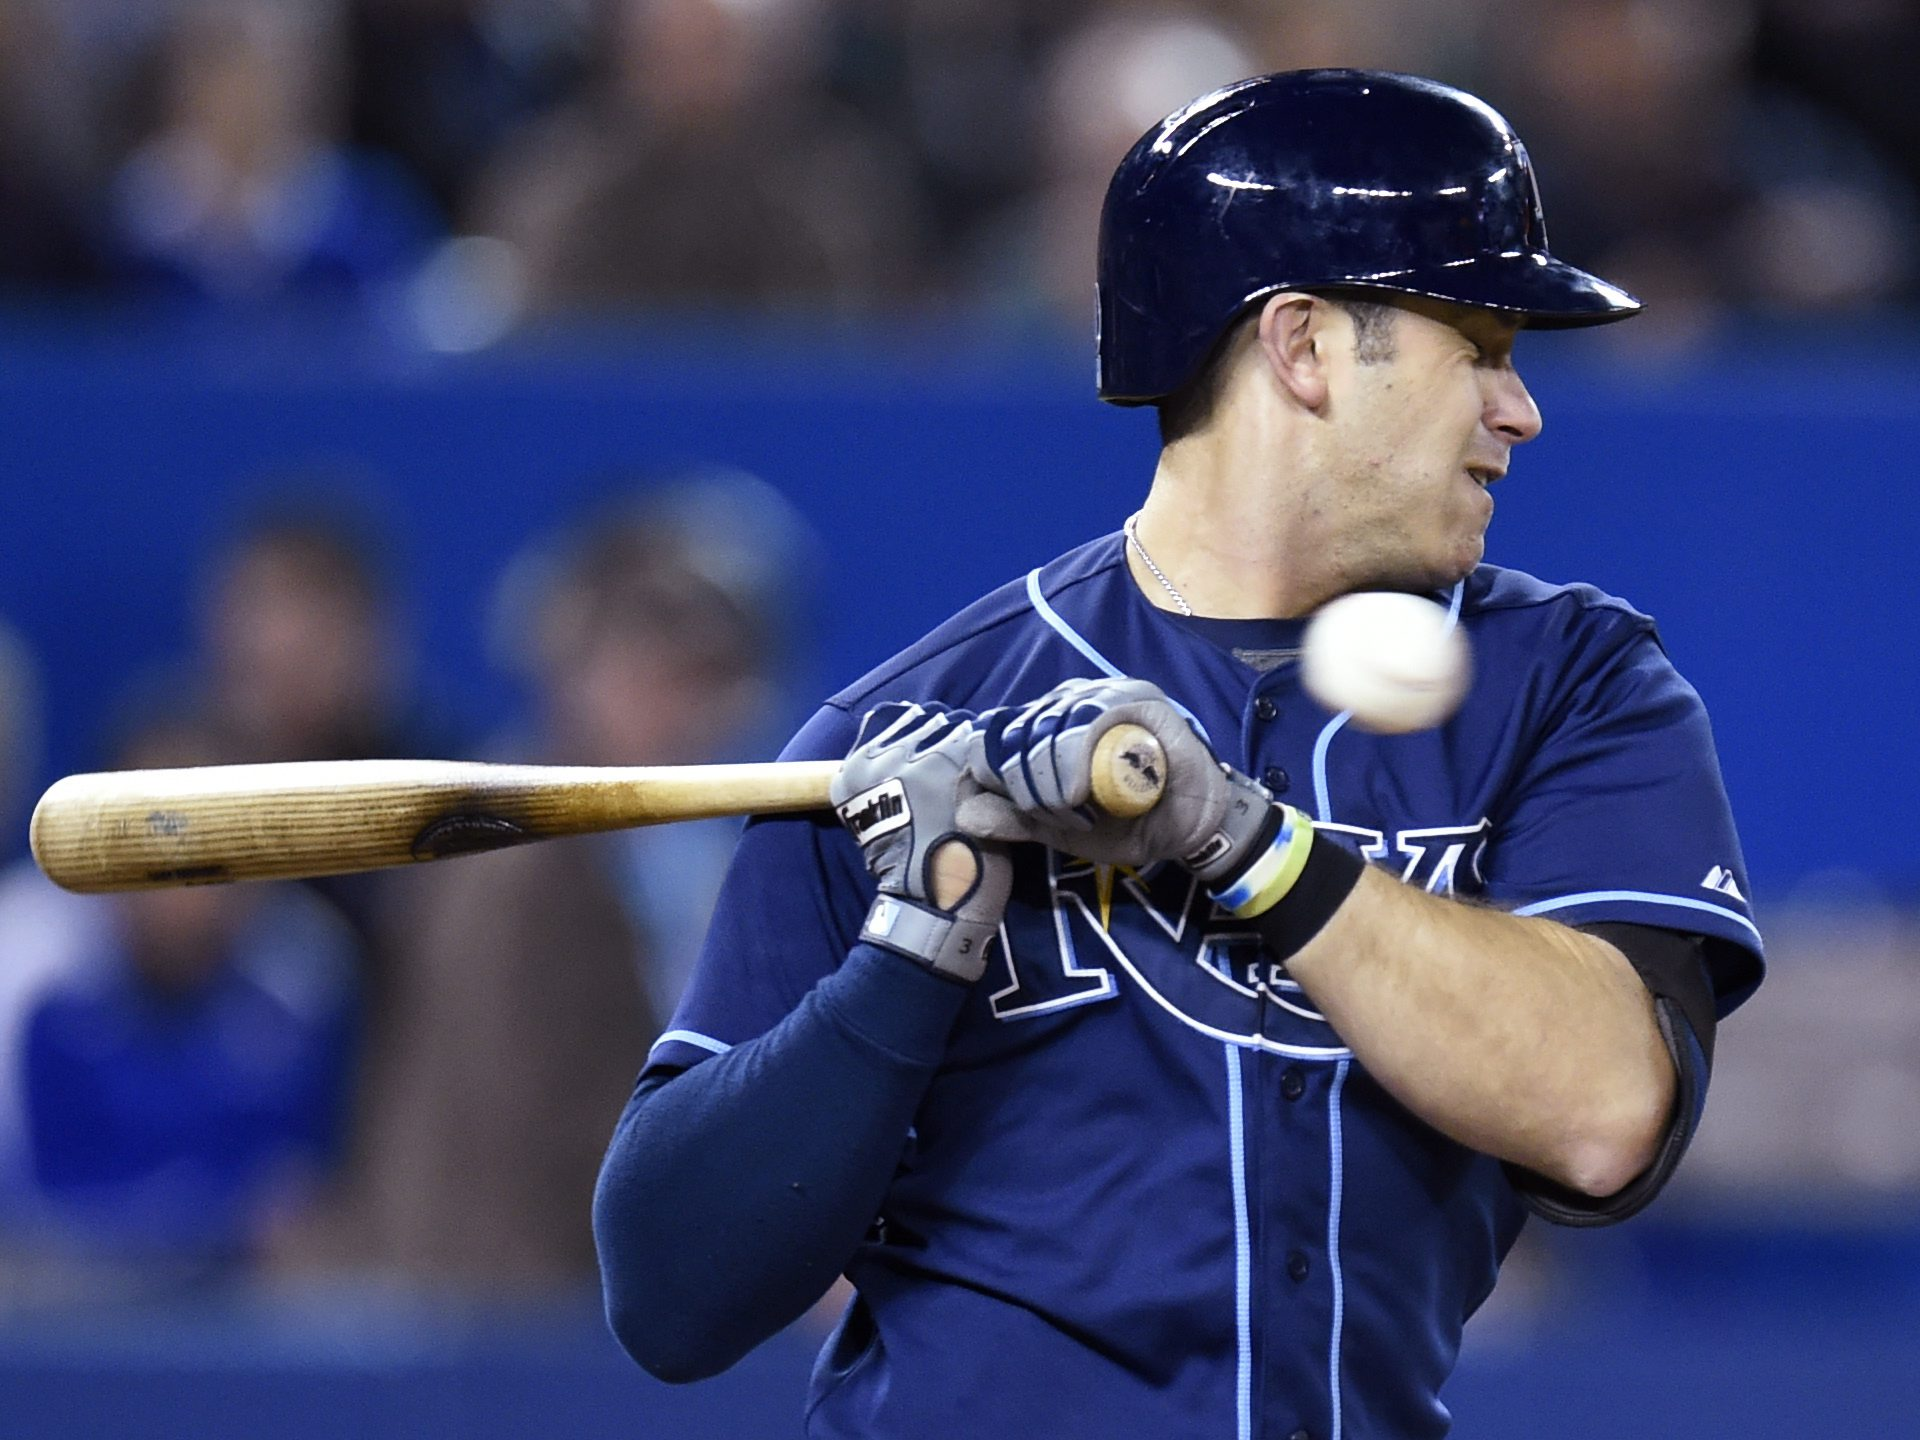 Tampa Bay Rays' Evan Longoria moves out of the way of an inside pitch from Toronto Blue Jays' Aaron Sanchez during the fourth inning of a baseball game, Thursday, April 16, 2015 in Toronto. (Frank Gunn/The Canadian Press via AP)  MANDATORY CREDIT